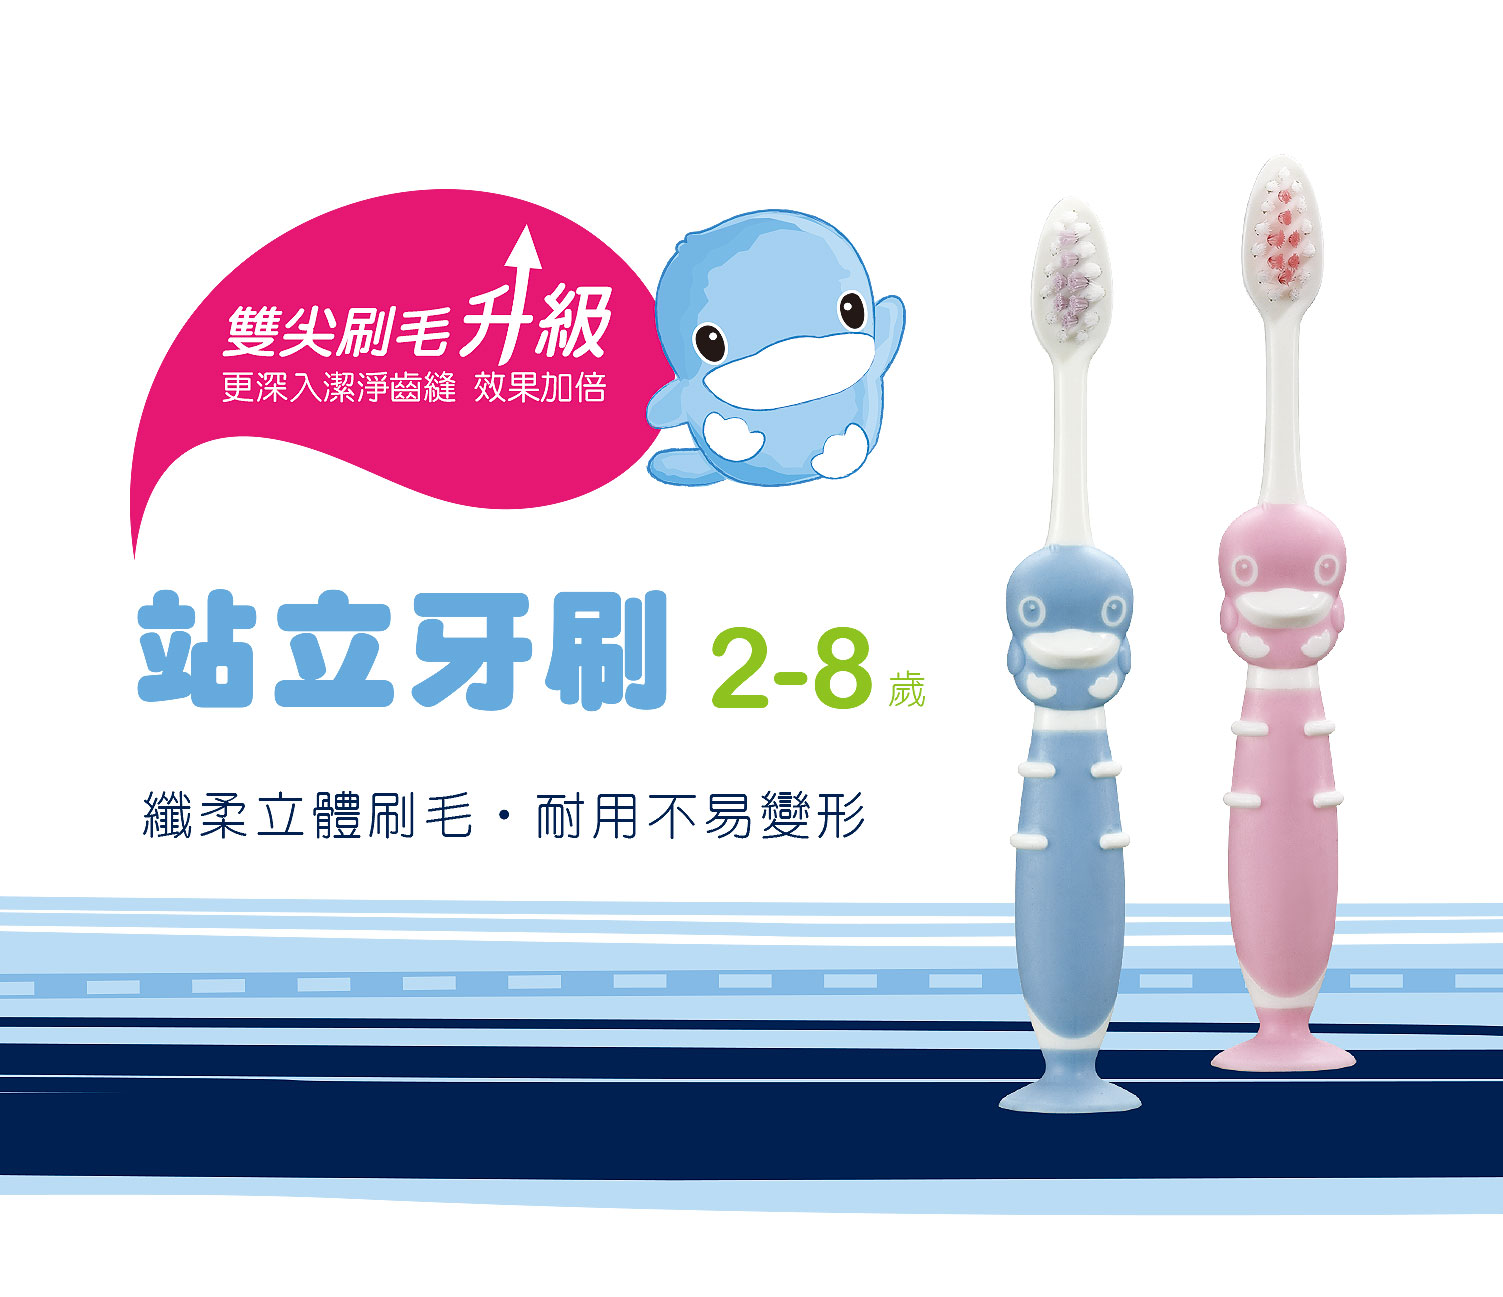 proimages/Bathing&CleanSeries/Clean&Care/Toothbrush/1113/KU1113-站立牙刷1入-網頁編輯-1.jpg